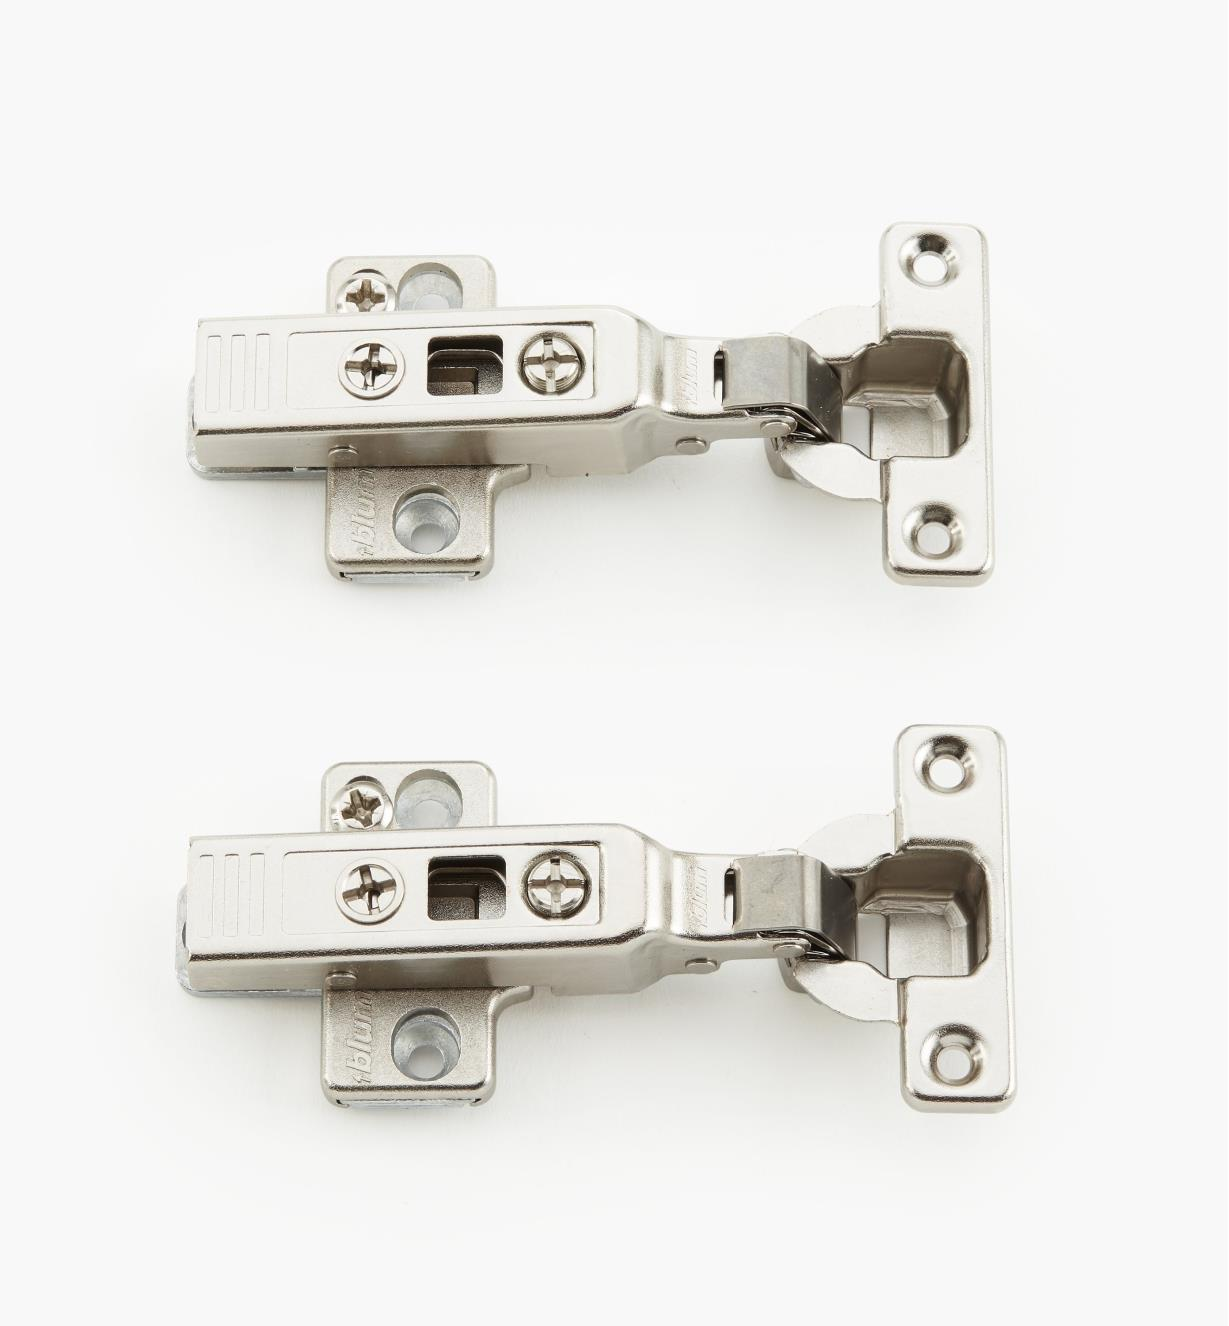 00B1400 - 94° Overlay Clip Mini Hinges, pr.